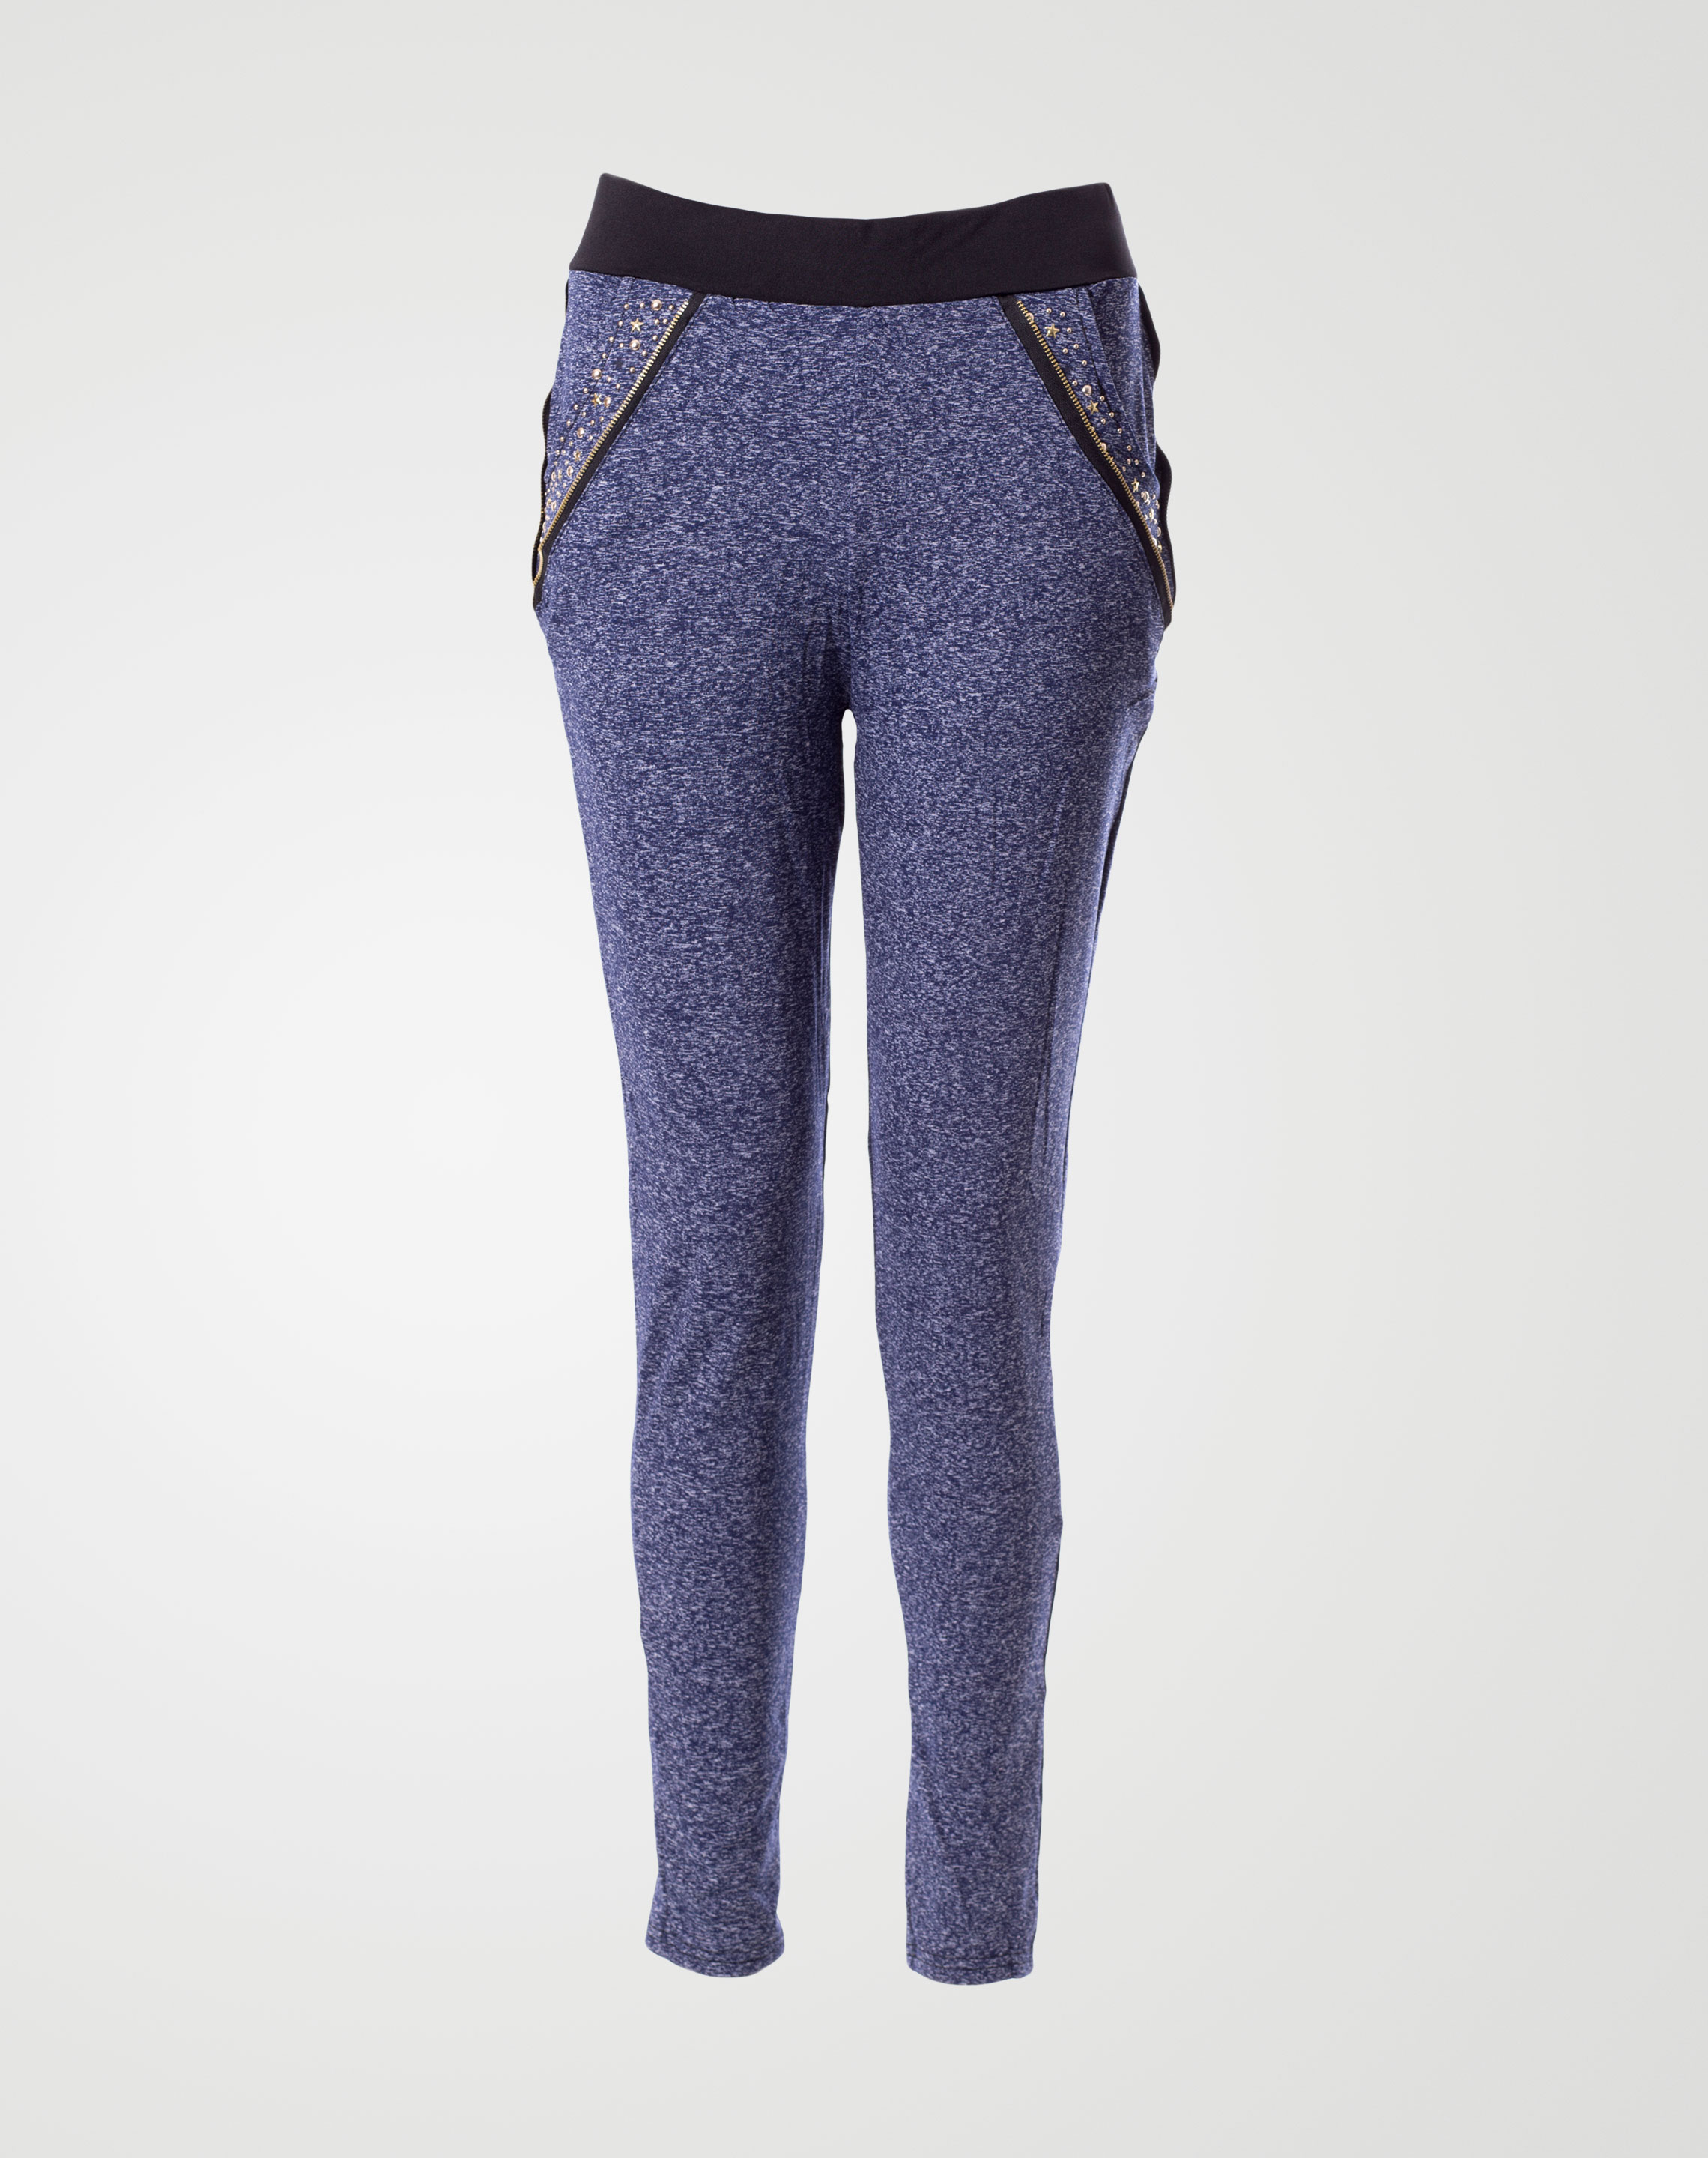 Image 1 of Womens Waist Side Zips Leggings 2034 Color Blue and sizes S-M, M-L, XL-2XL from Noroze